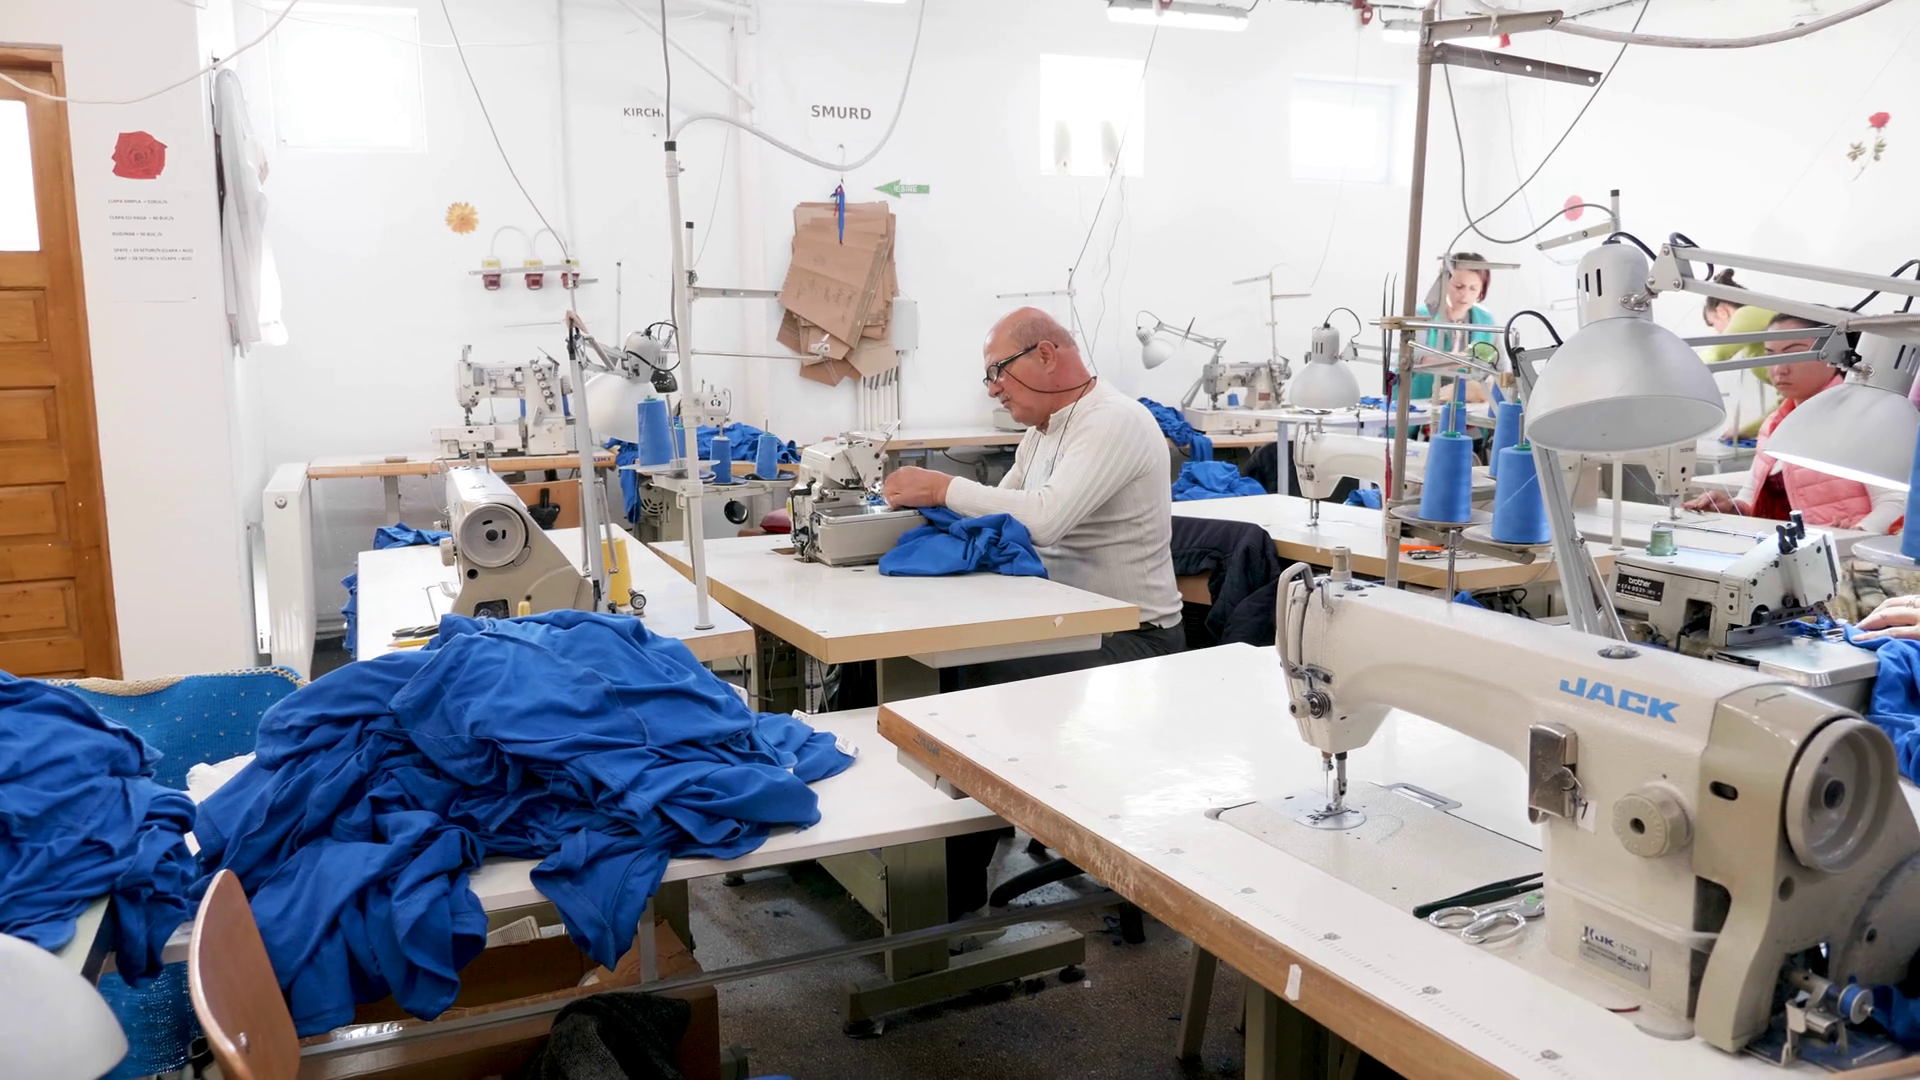 Portrait of a man at a sewing machine in a sewing factory. Textile production. Stock Video Footage - Storyblocks